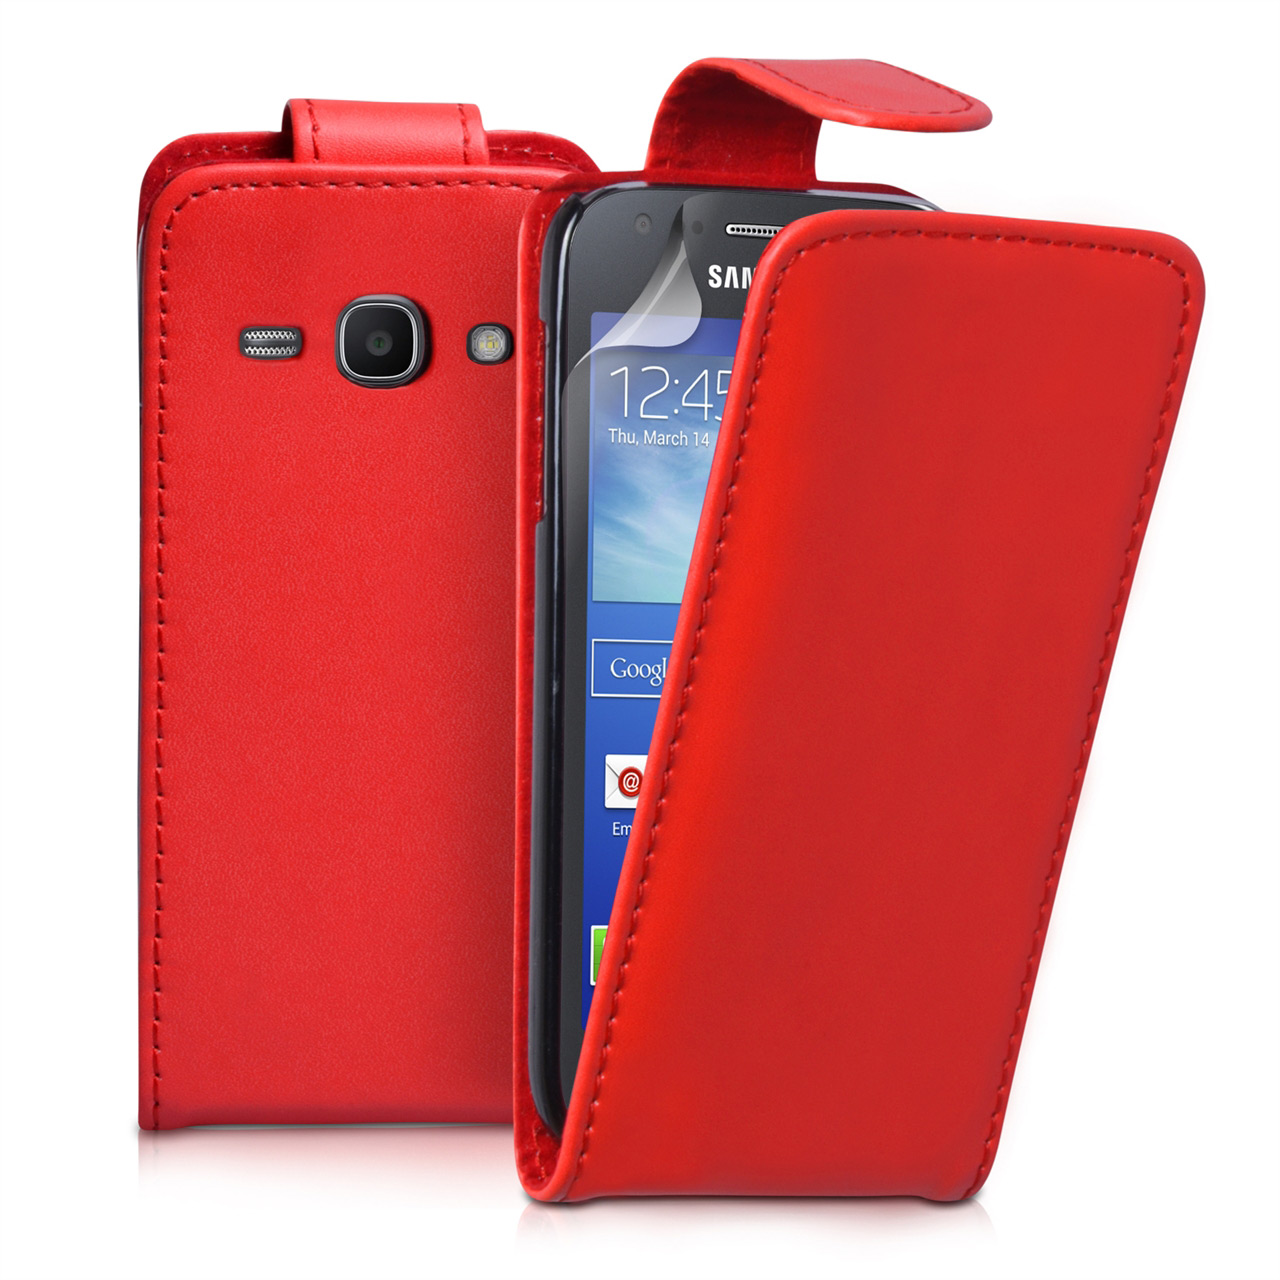 YouSave Samsung Galaxy Ace 3 Leather Effect Flip Case